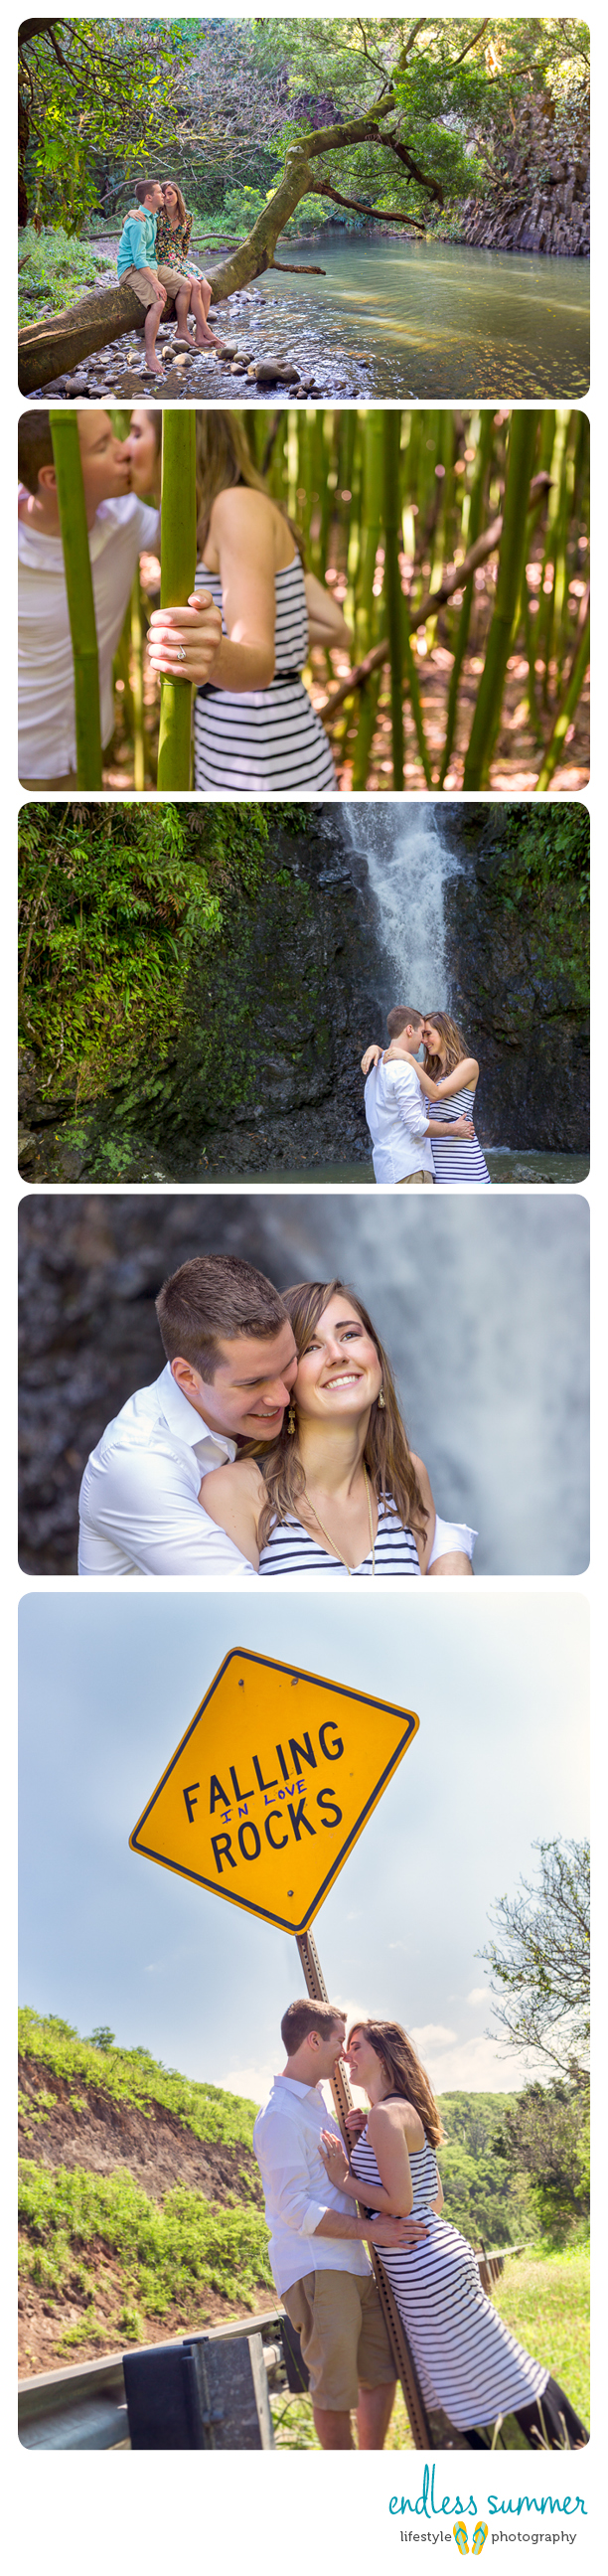 Maui Rainforest Engagement Photos